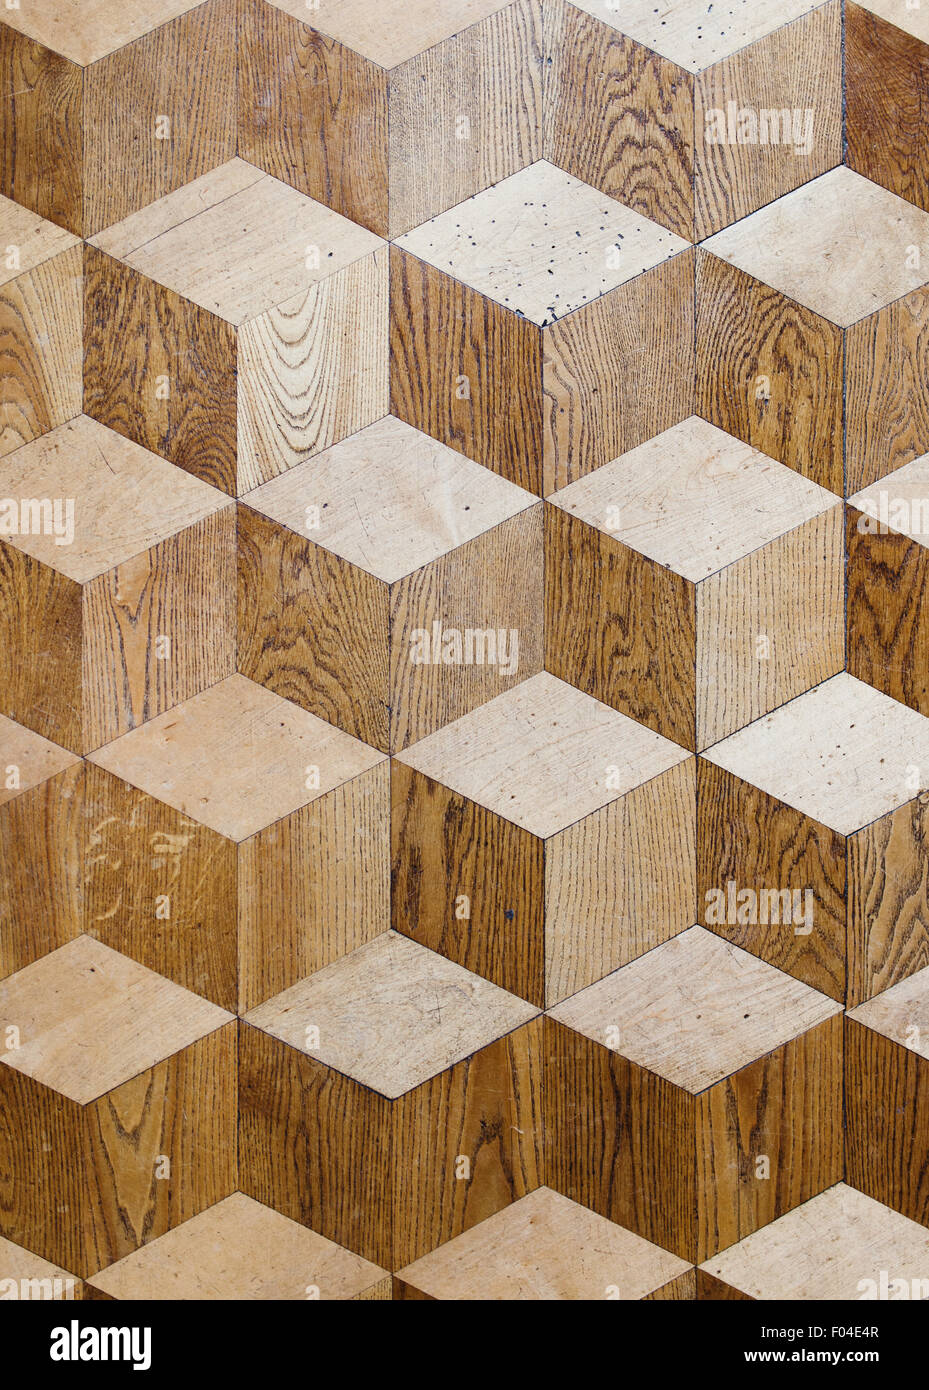 Old palace wooden parquet flooring design with volume cubes old palace wooden parquet flooring design with volume cubes illusion stock photo dailygadgetfo Image collections